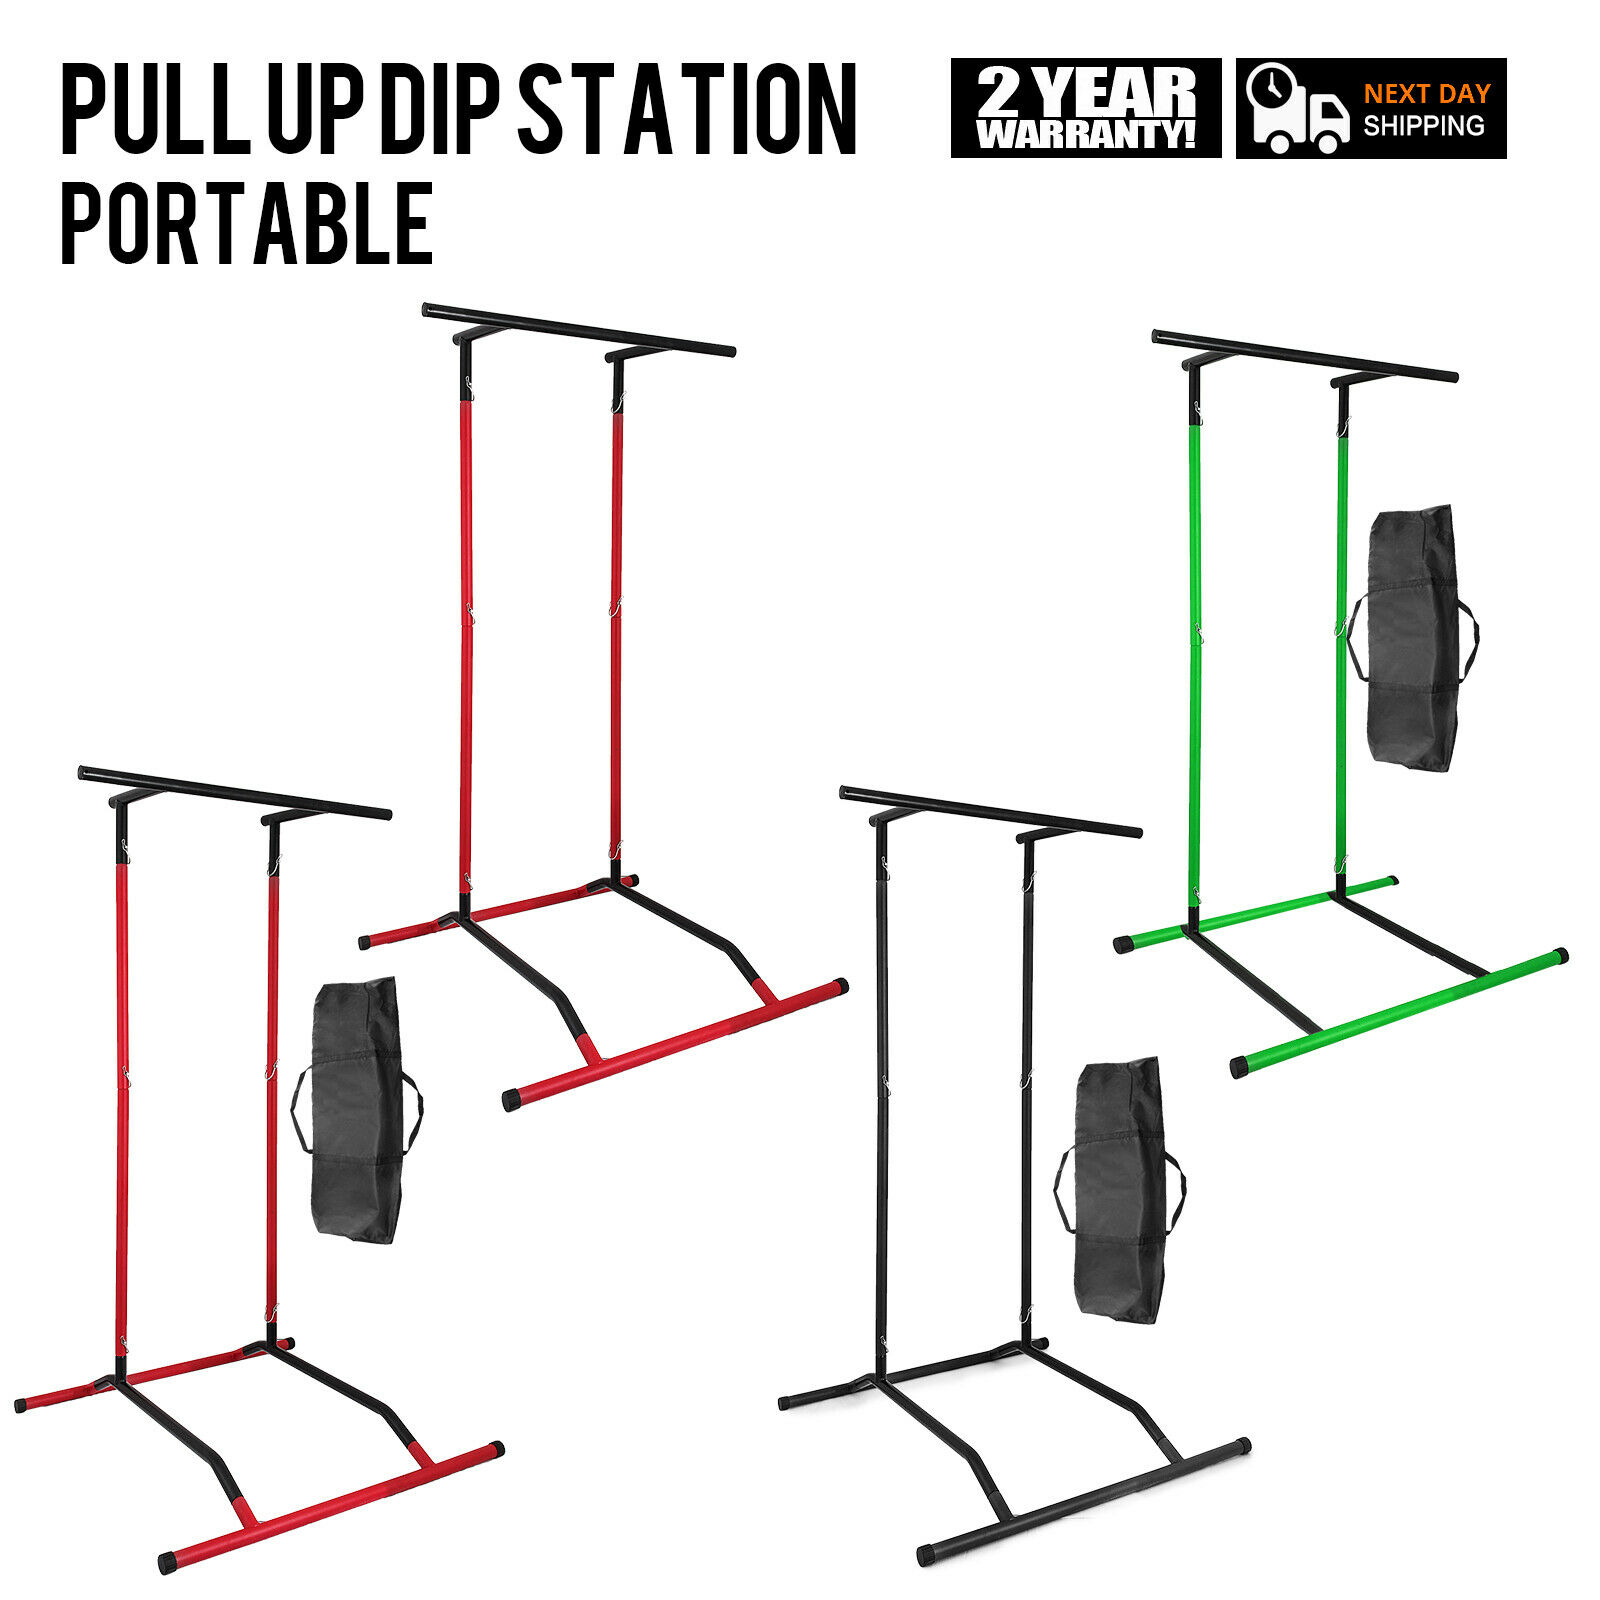 portable Pull Up Dip Station Gym Bar Power Tower w sac Training Stand UPDATED